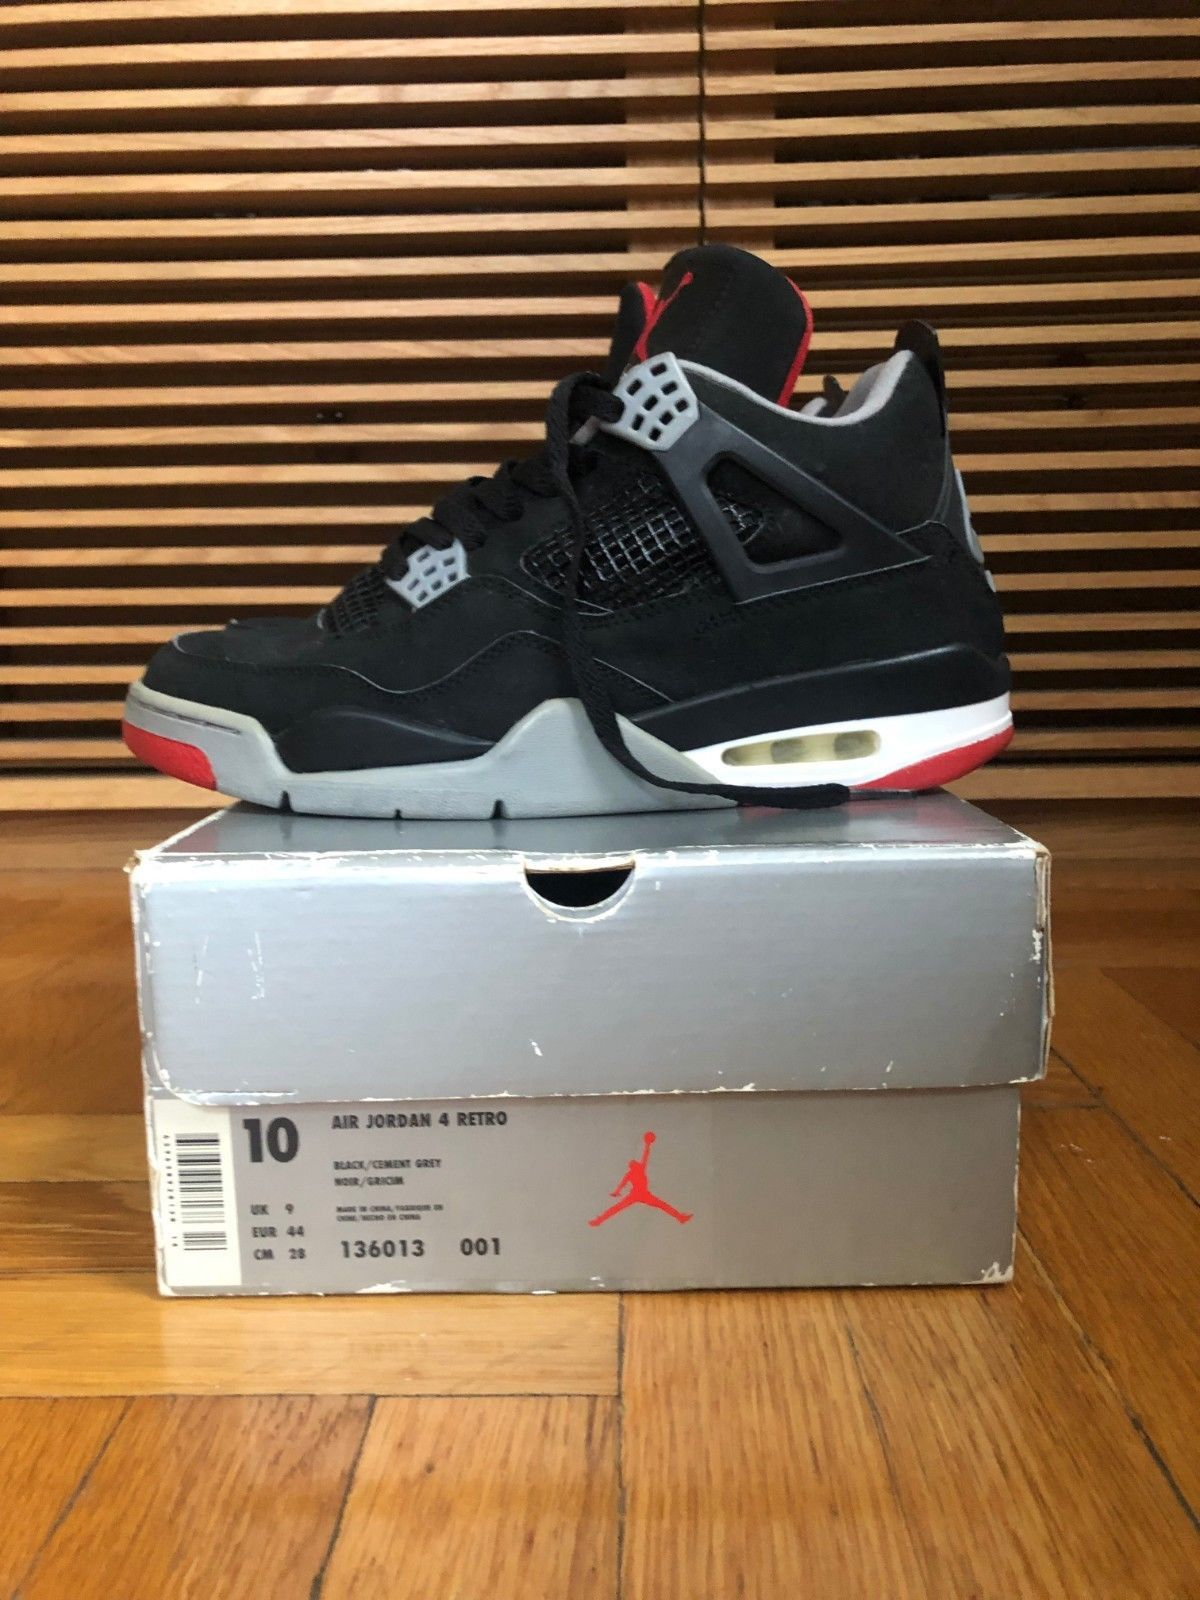 official photos da555 b599f Nike Air Jordan 4 Retro 1999 Black Cement Grey Size 10 Vintage